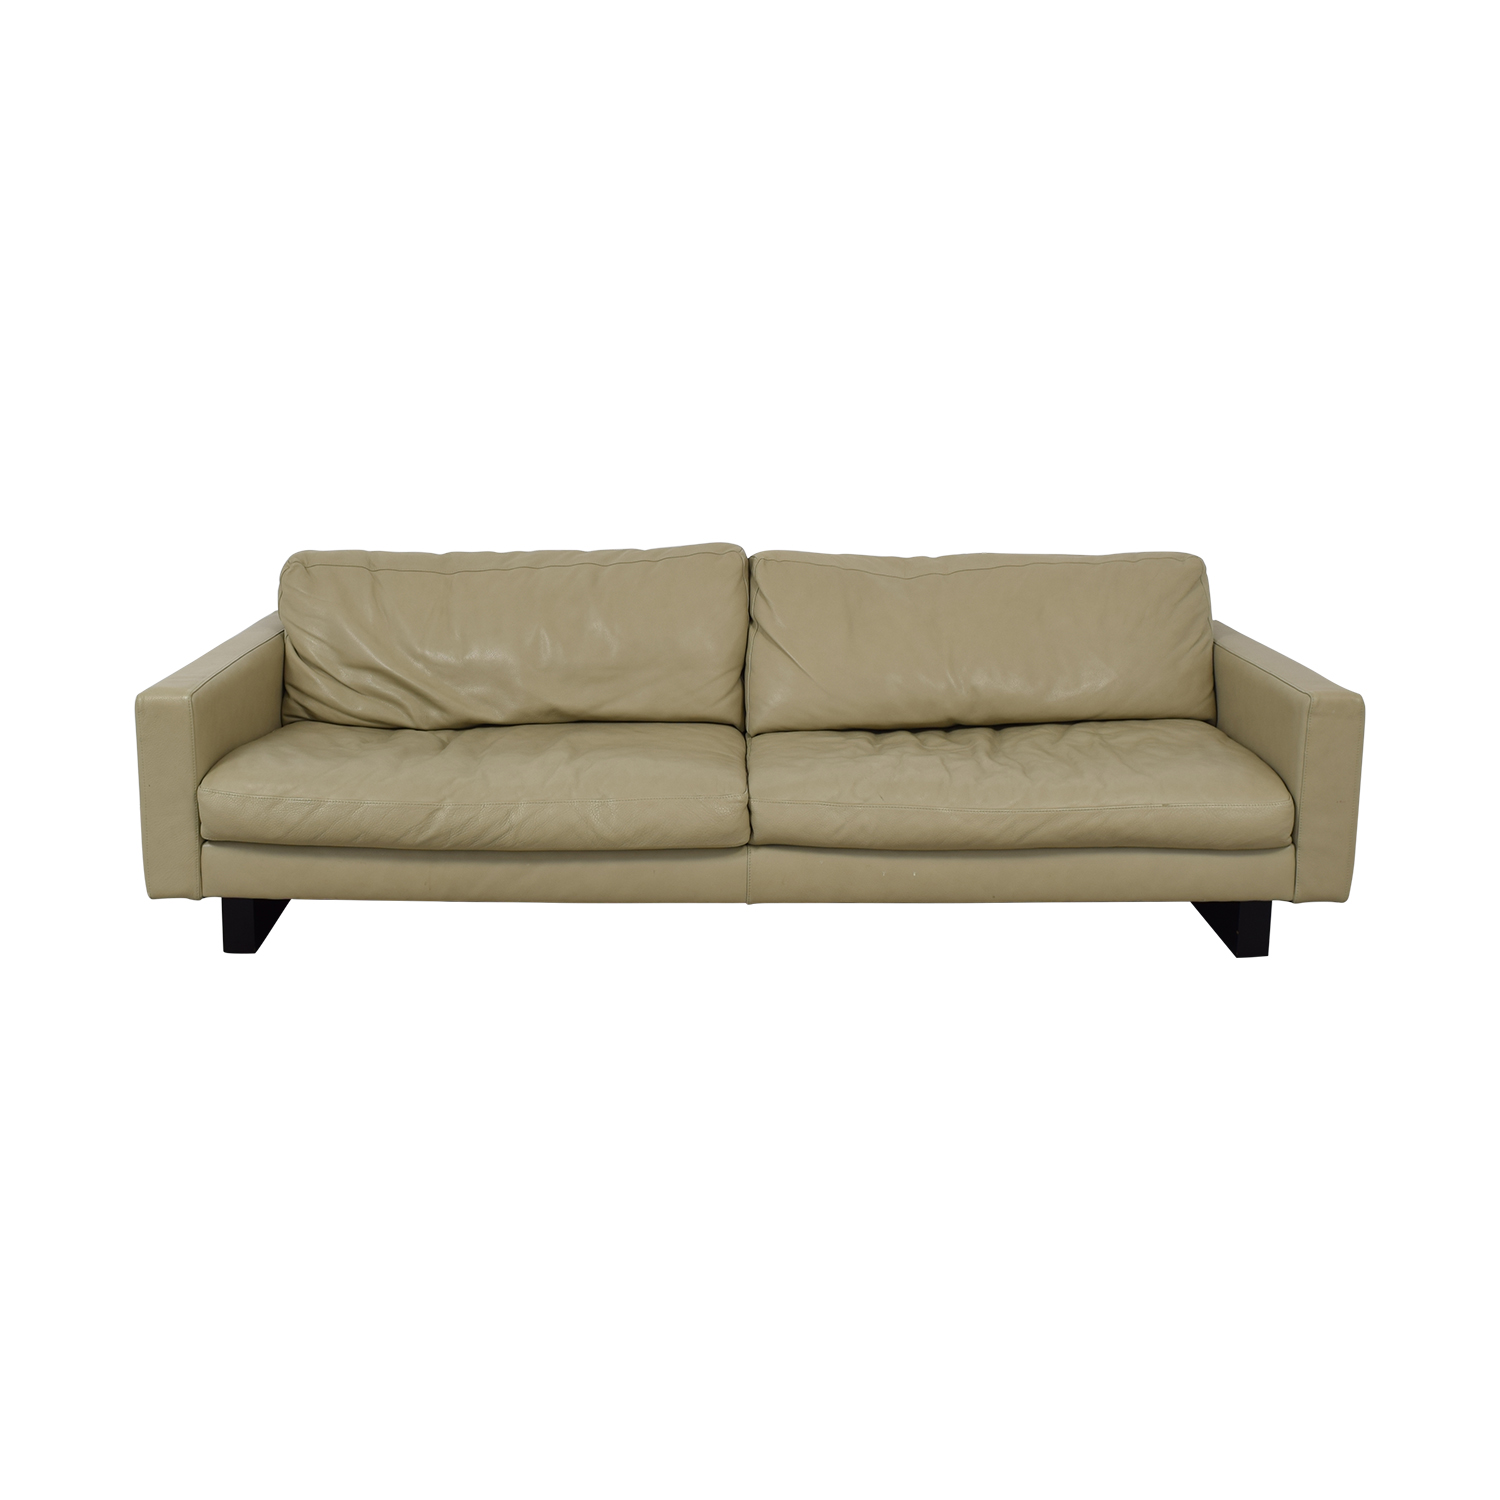 74% OFF - Room & Board Room & Board Hess Leather Sofa / Sofas